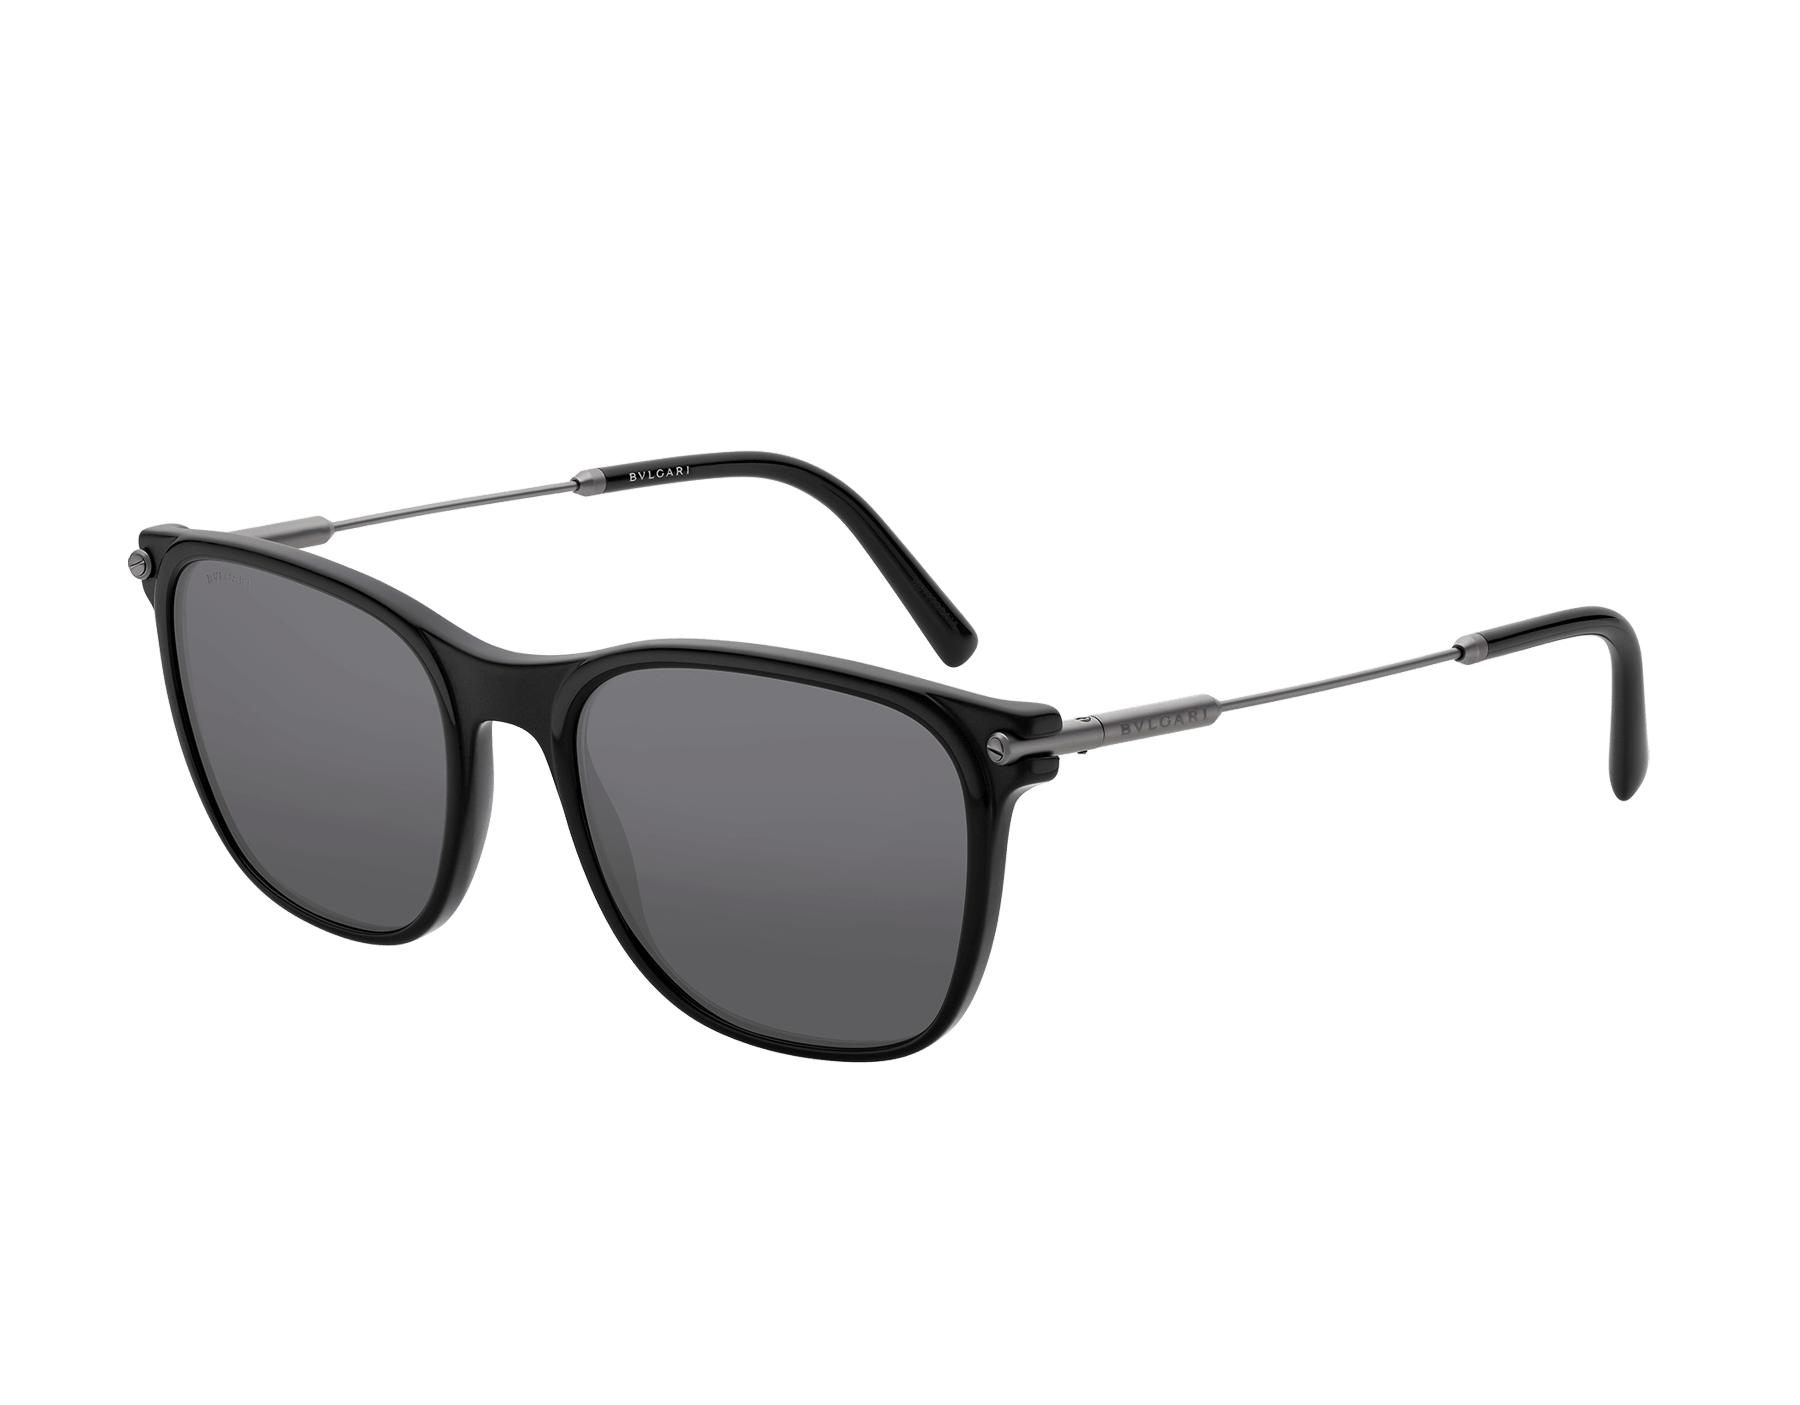 Diagono rectangular acetate sunglasses. 903600 image 1